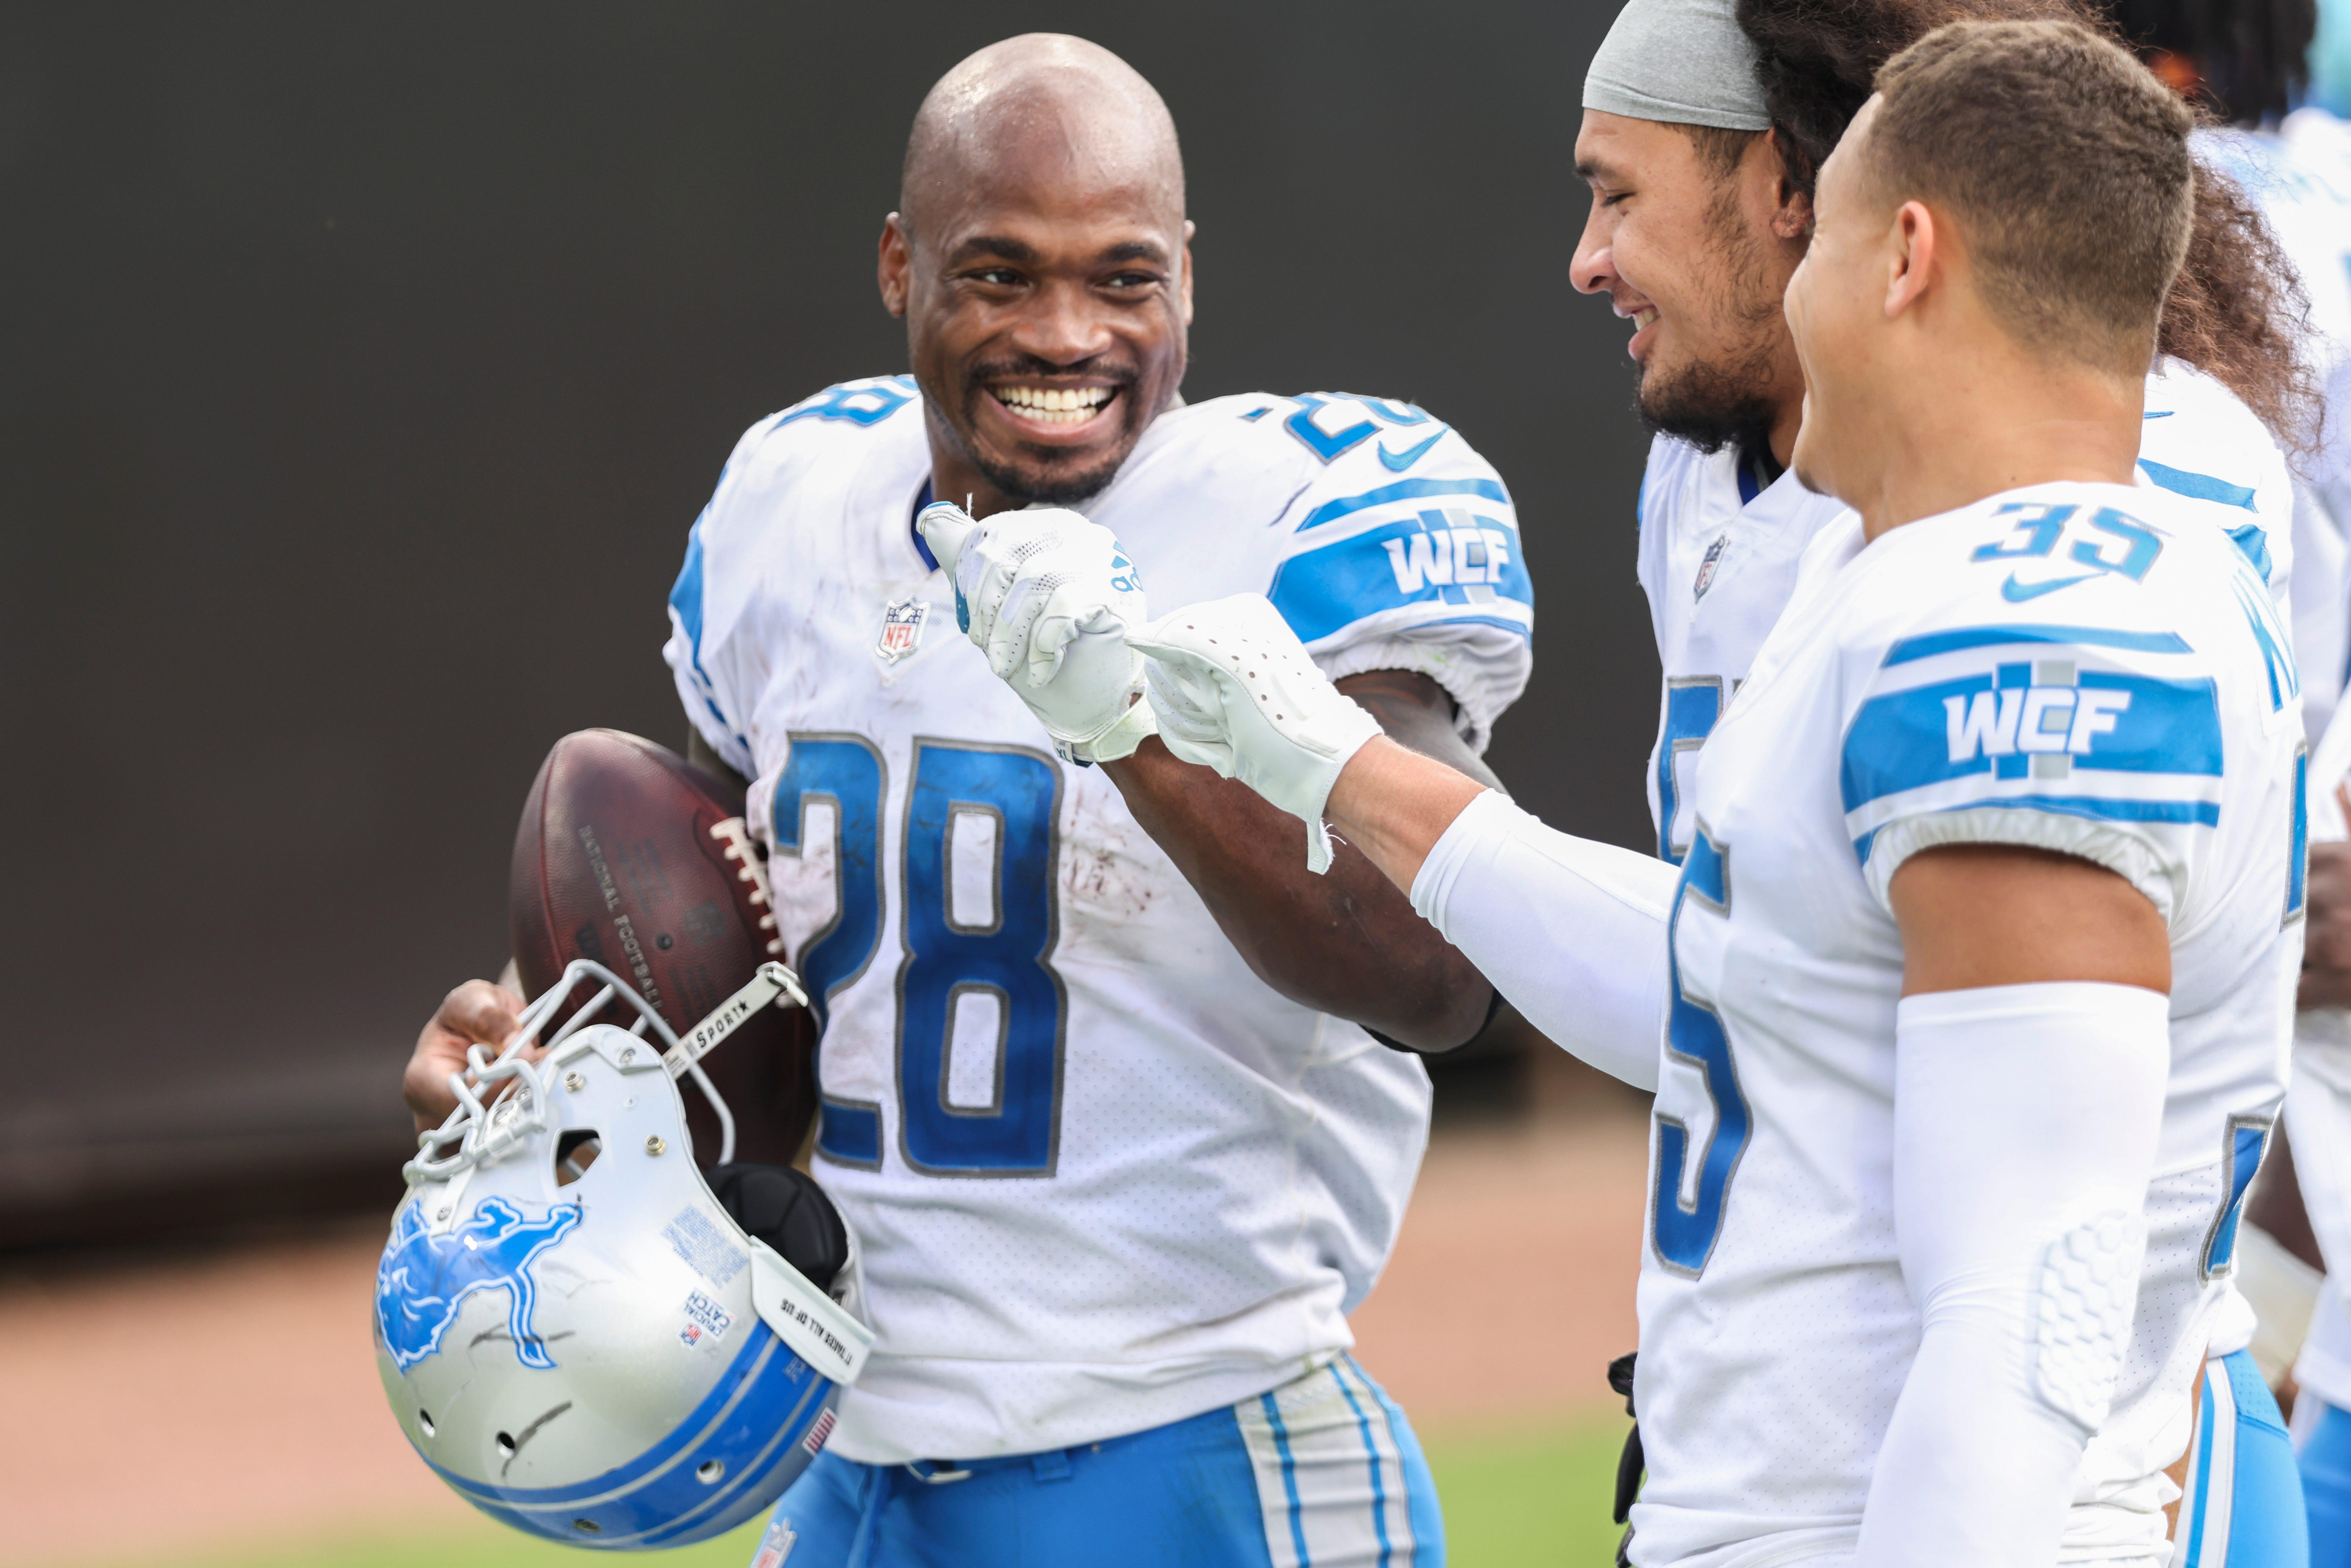 Making sense of Adrian Peterson's declining effectiveness for Detroit Lions